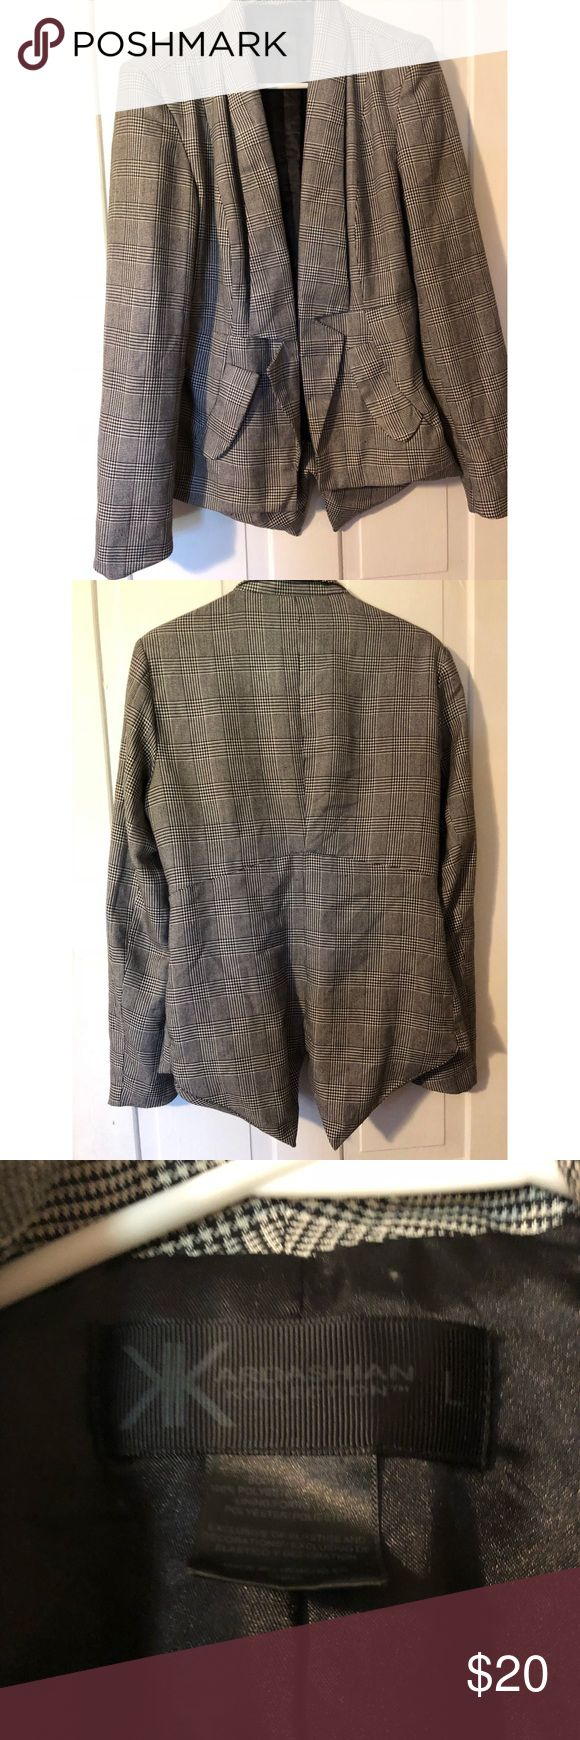 Kardashian Kollection Blazer Kardashian Kollection Blazer. Size large. Colors are grey, black, and white. Never worn! Kardashian Kollection Jackets & Coats Blazers